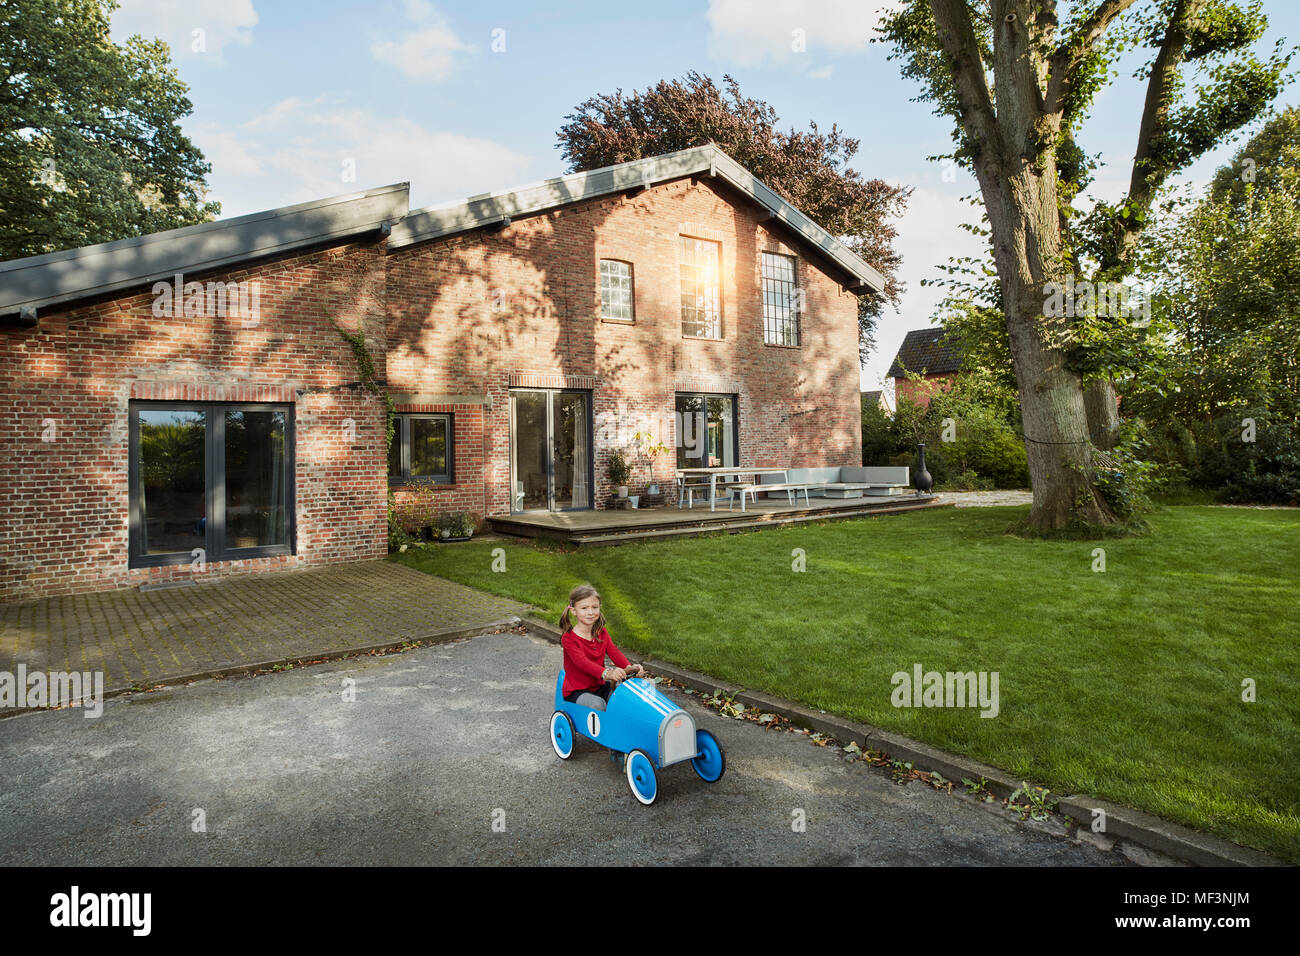 Girl playing with soapbox in driveway of residential house - Stock Image